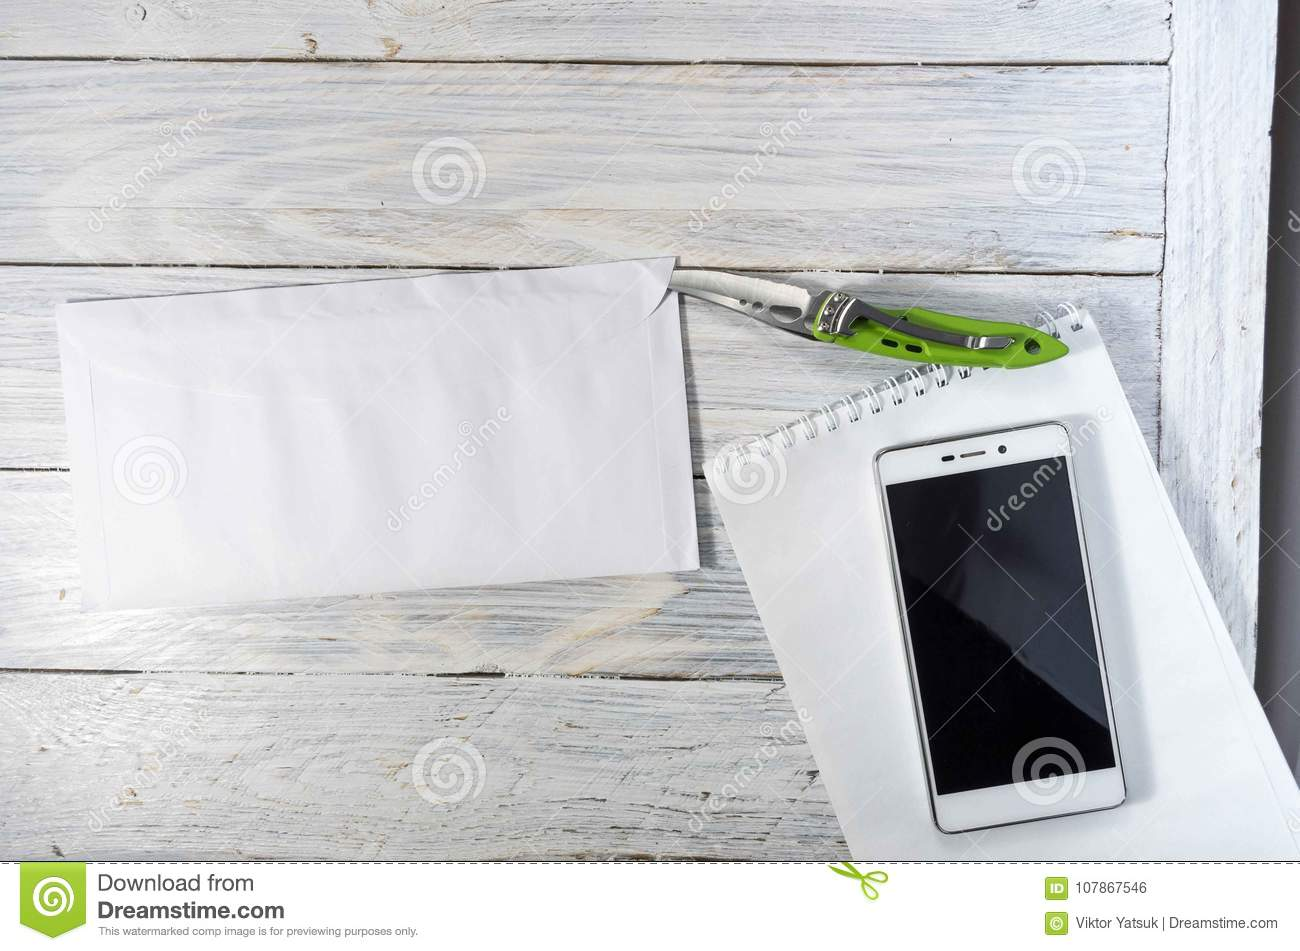 Envelope With A Letter On The Desktop  Knife, Notebook And Mobile